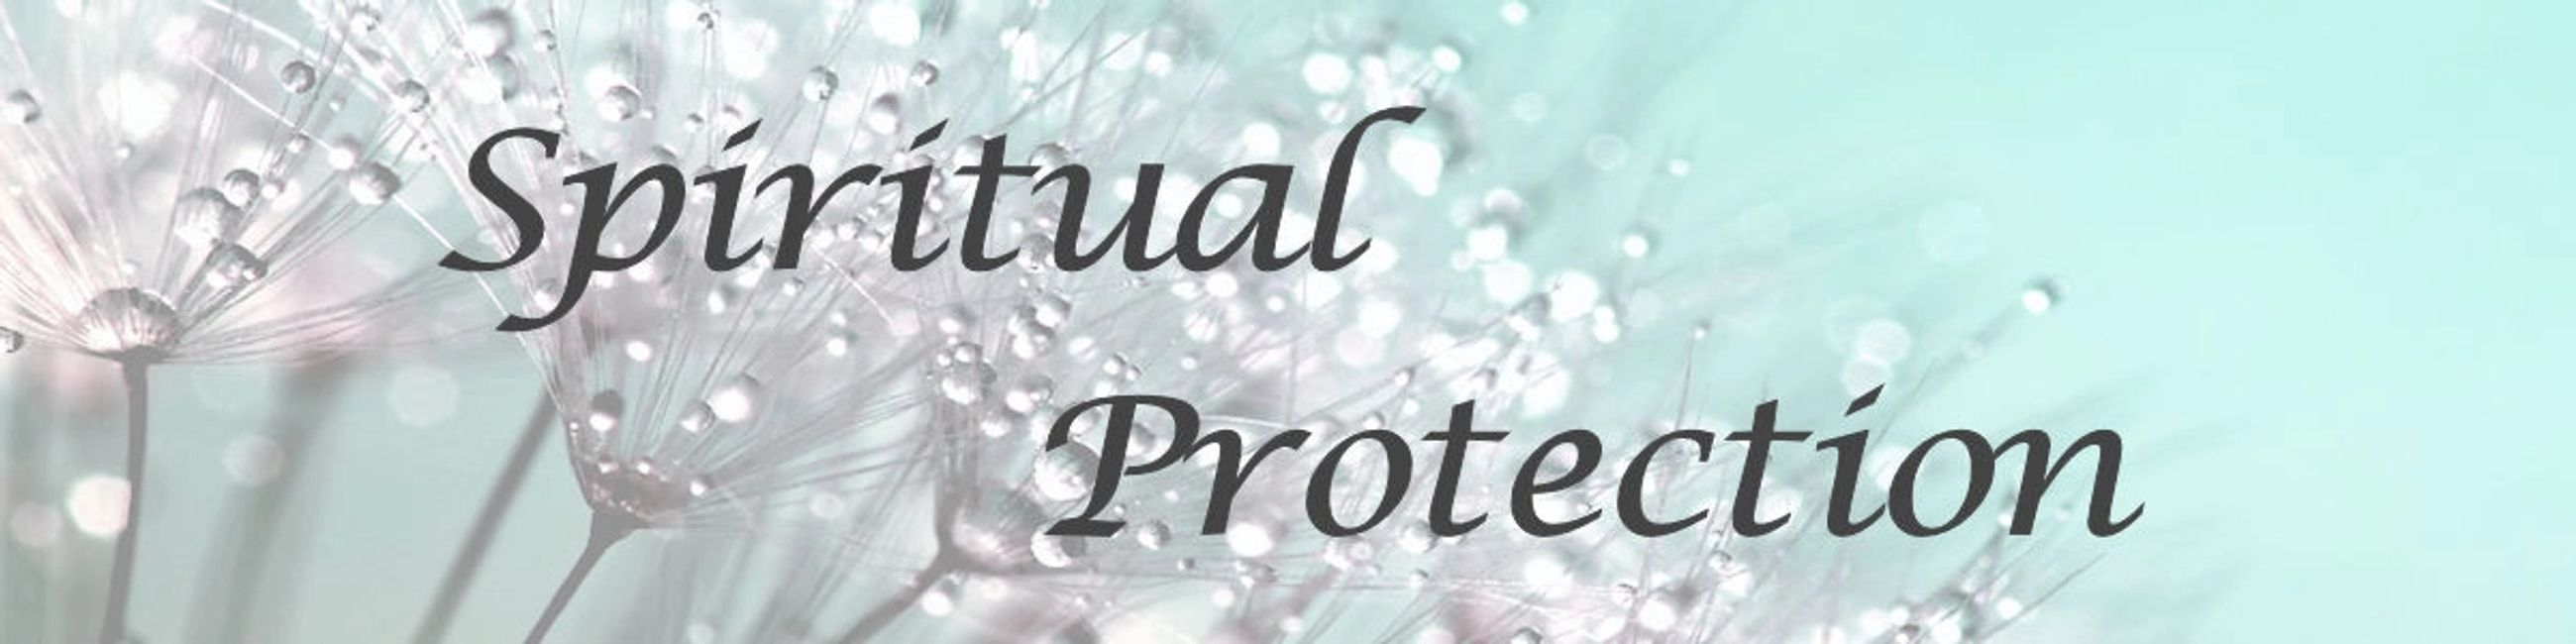 Spiritual Protection with Ivory LaNoue